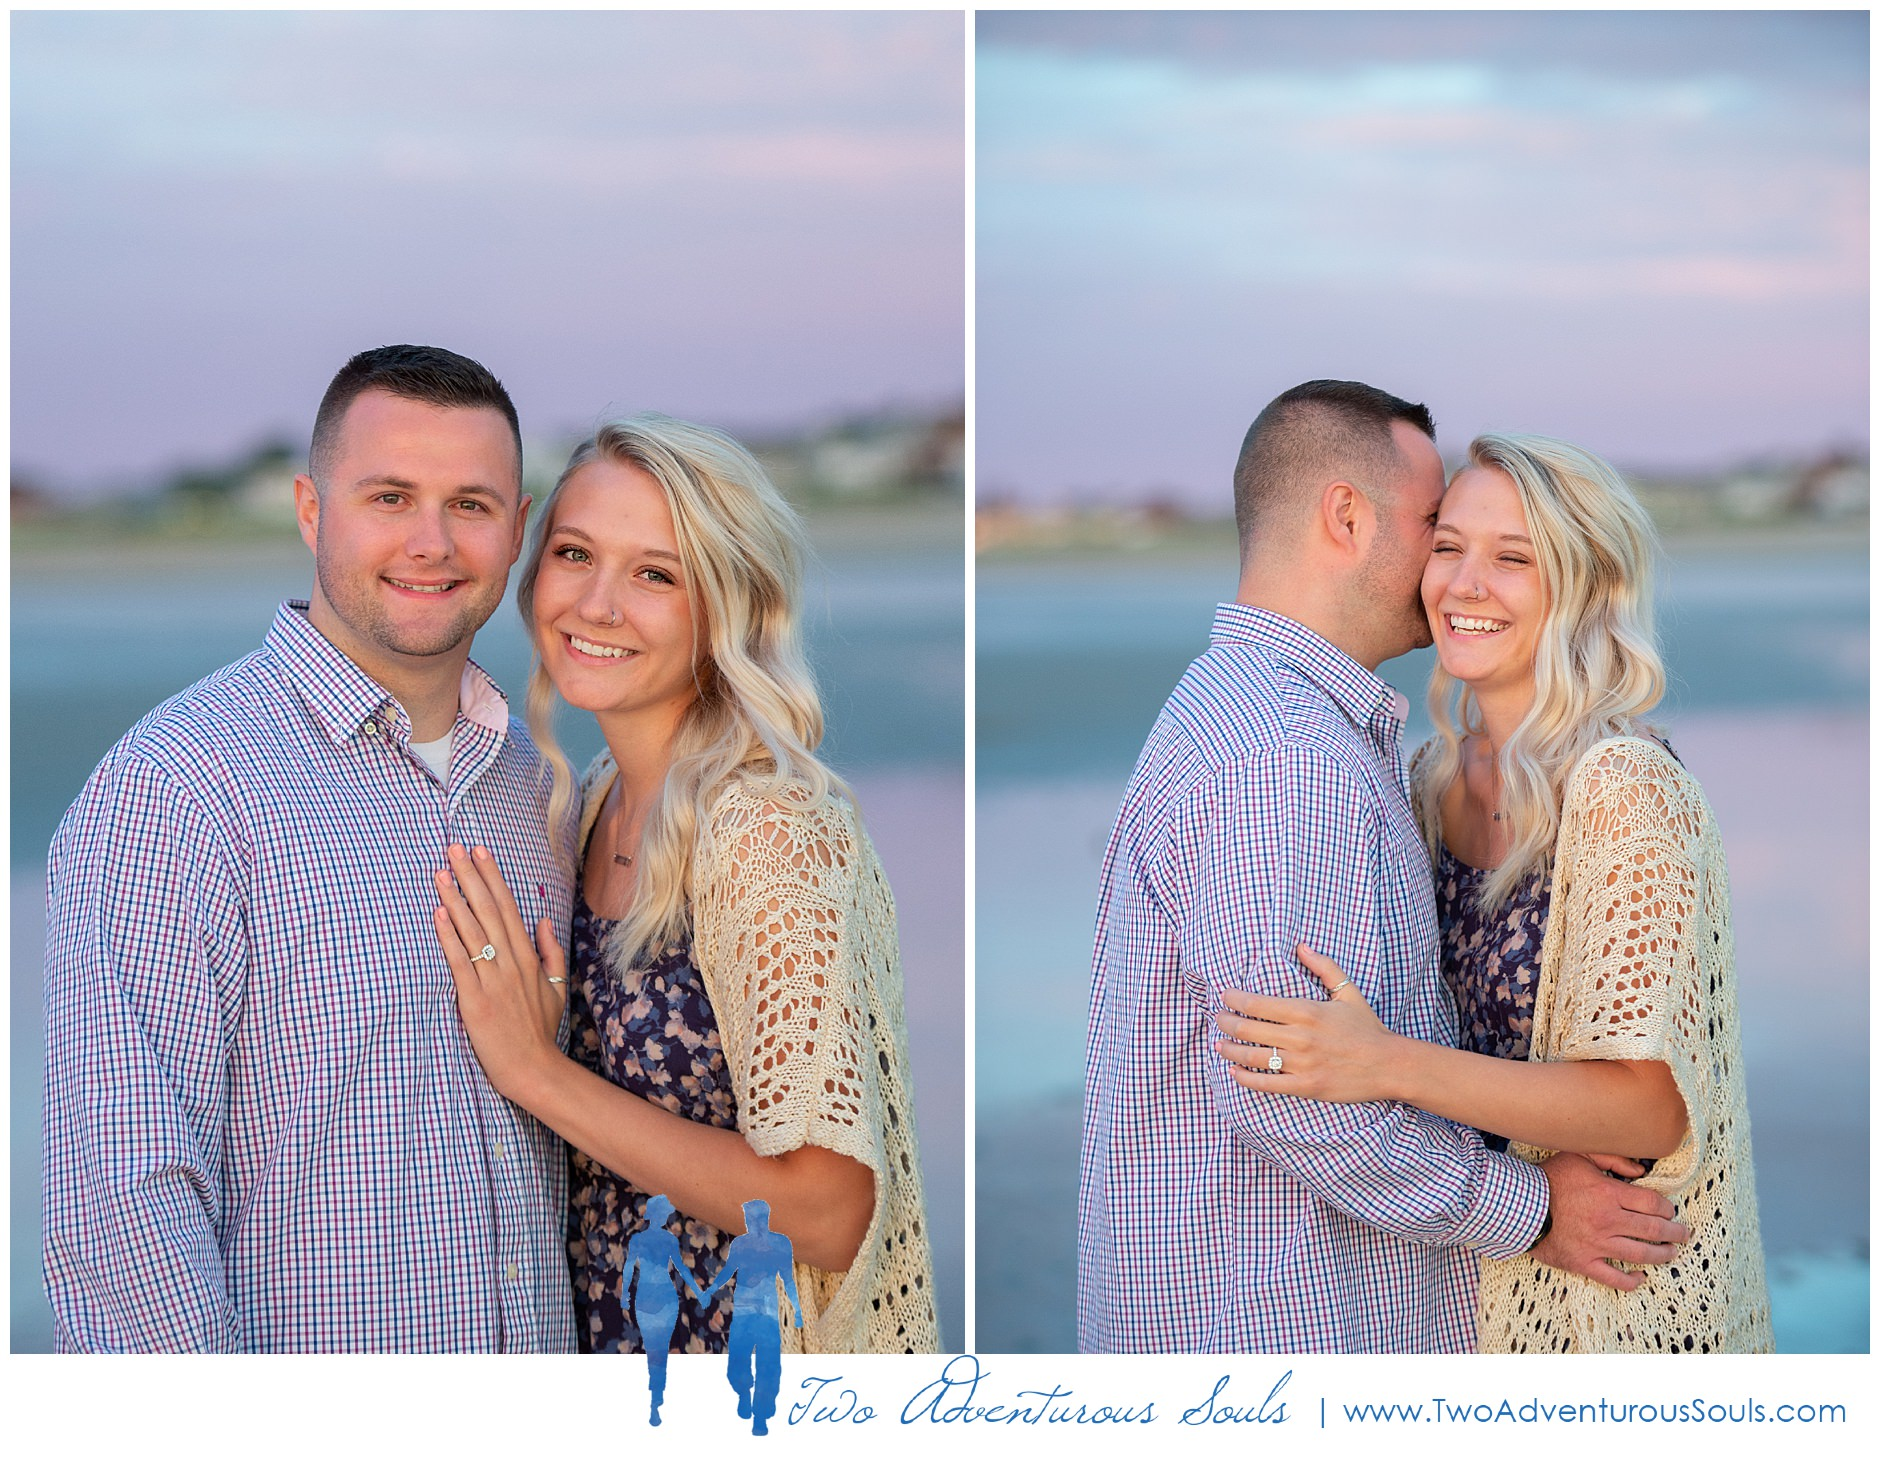 Surprise Proposal, Old Orchard Beach Photographer, Proposal Photographer in maine, Two Adventurous Souls_0004.jpg